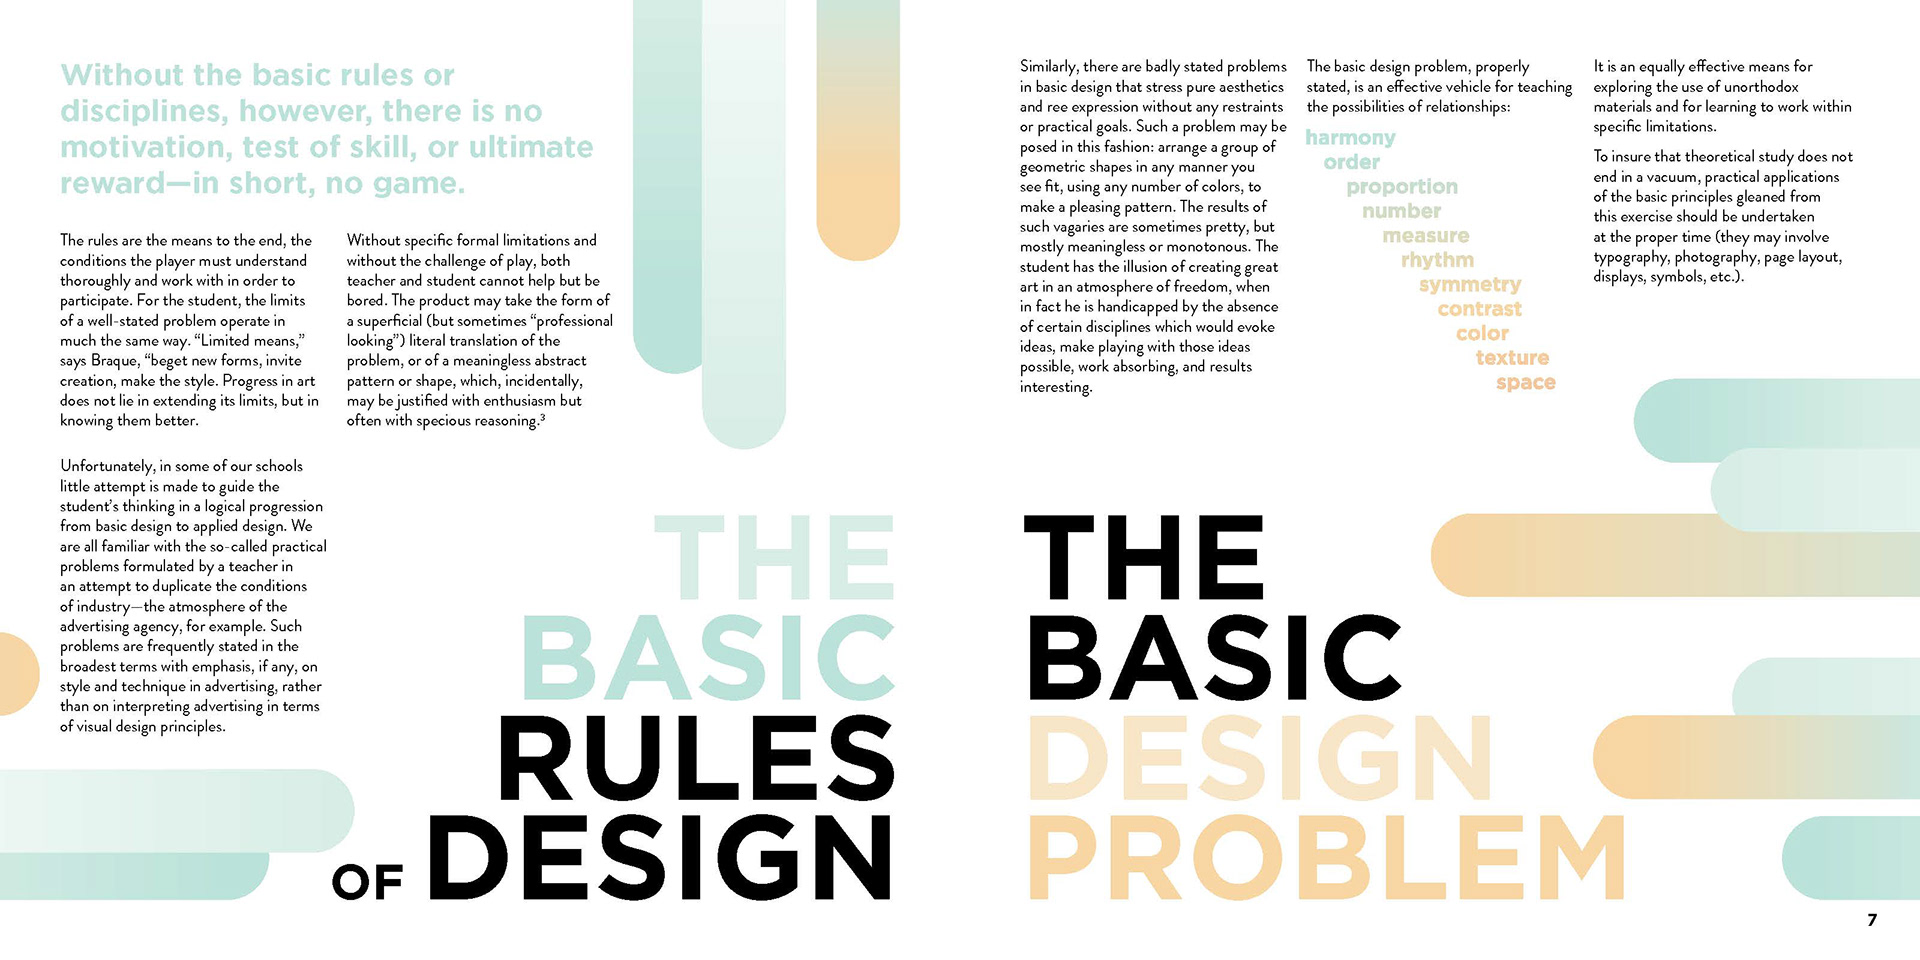 Michelle Gore Design And The Play Instinct By Paul Rand